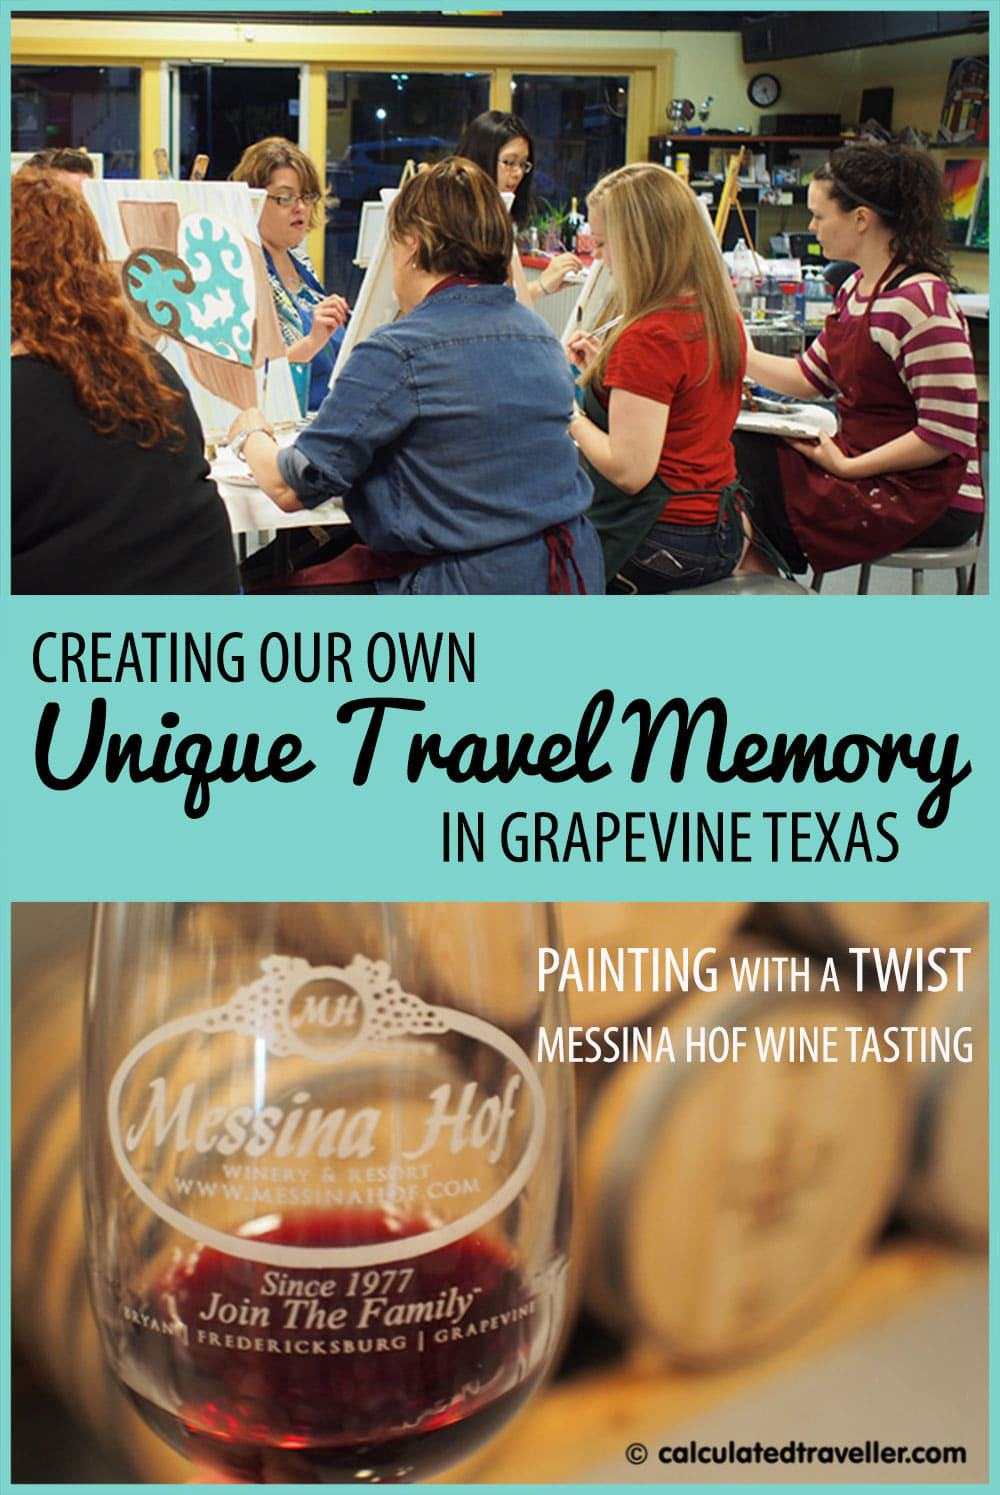 Messina Hof Winery and Painting with a Twist Grapevine Texas